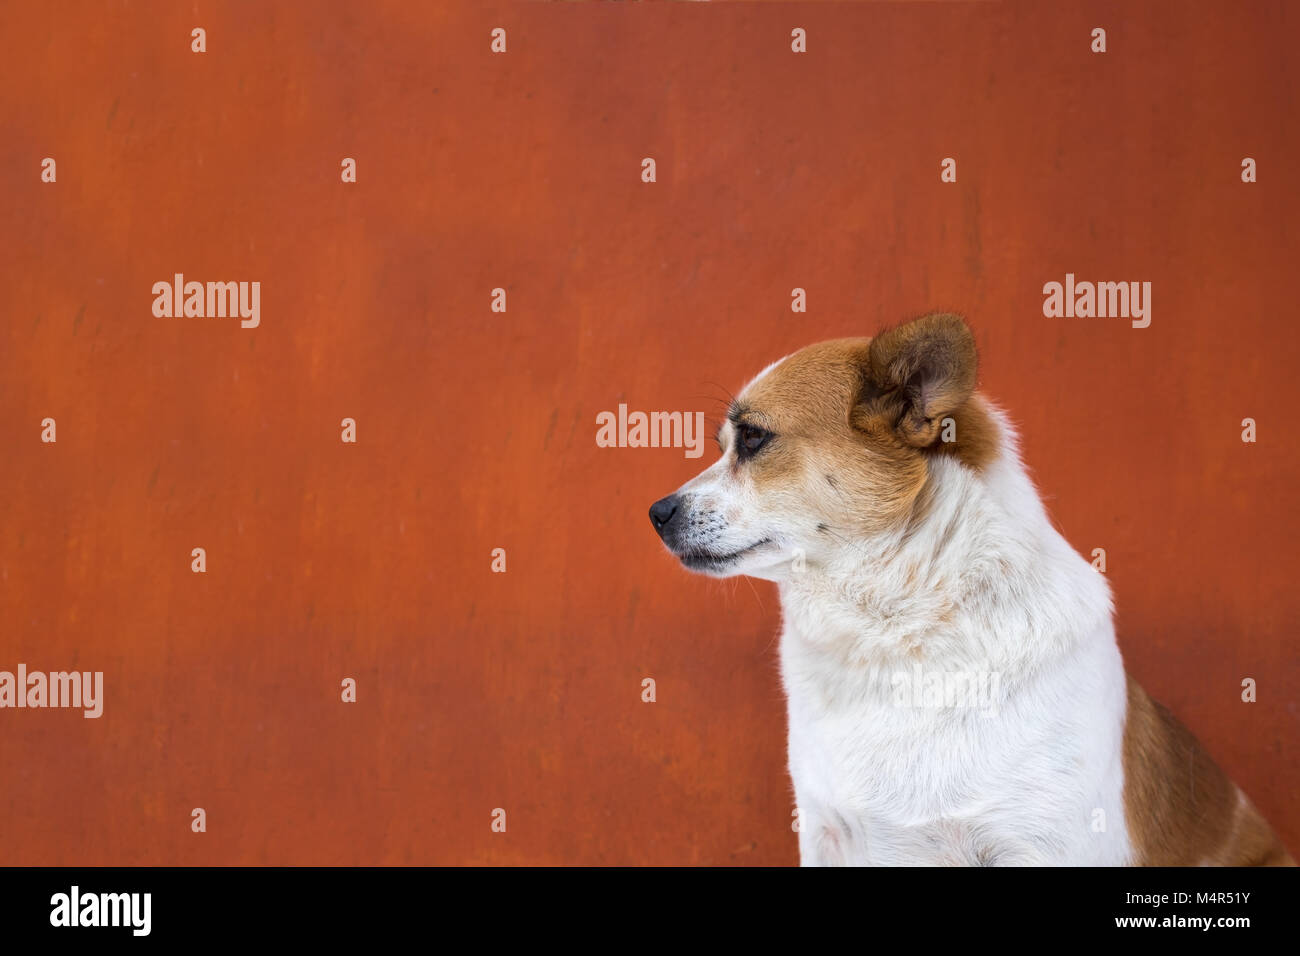 White and frown ugly dog look arrogant. Side view - Stock Image